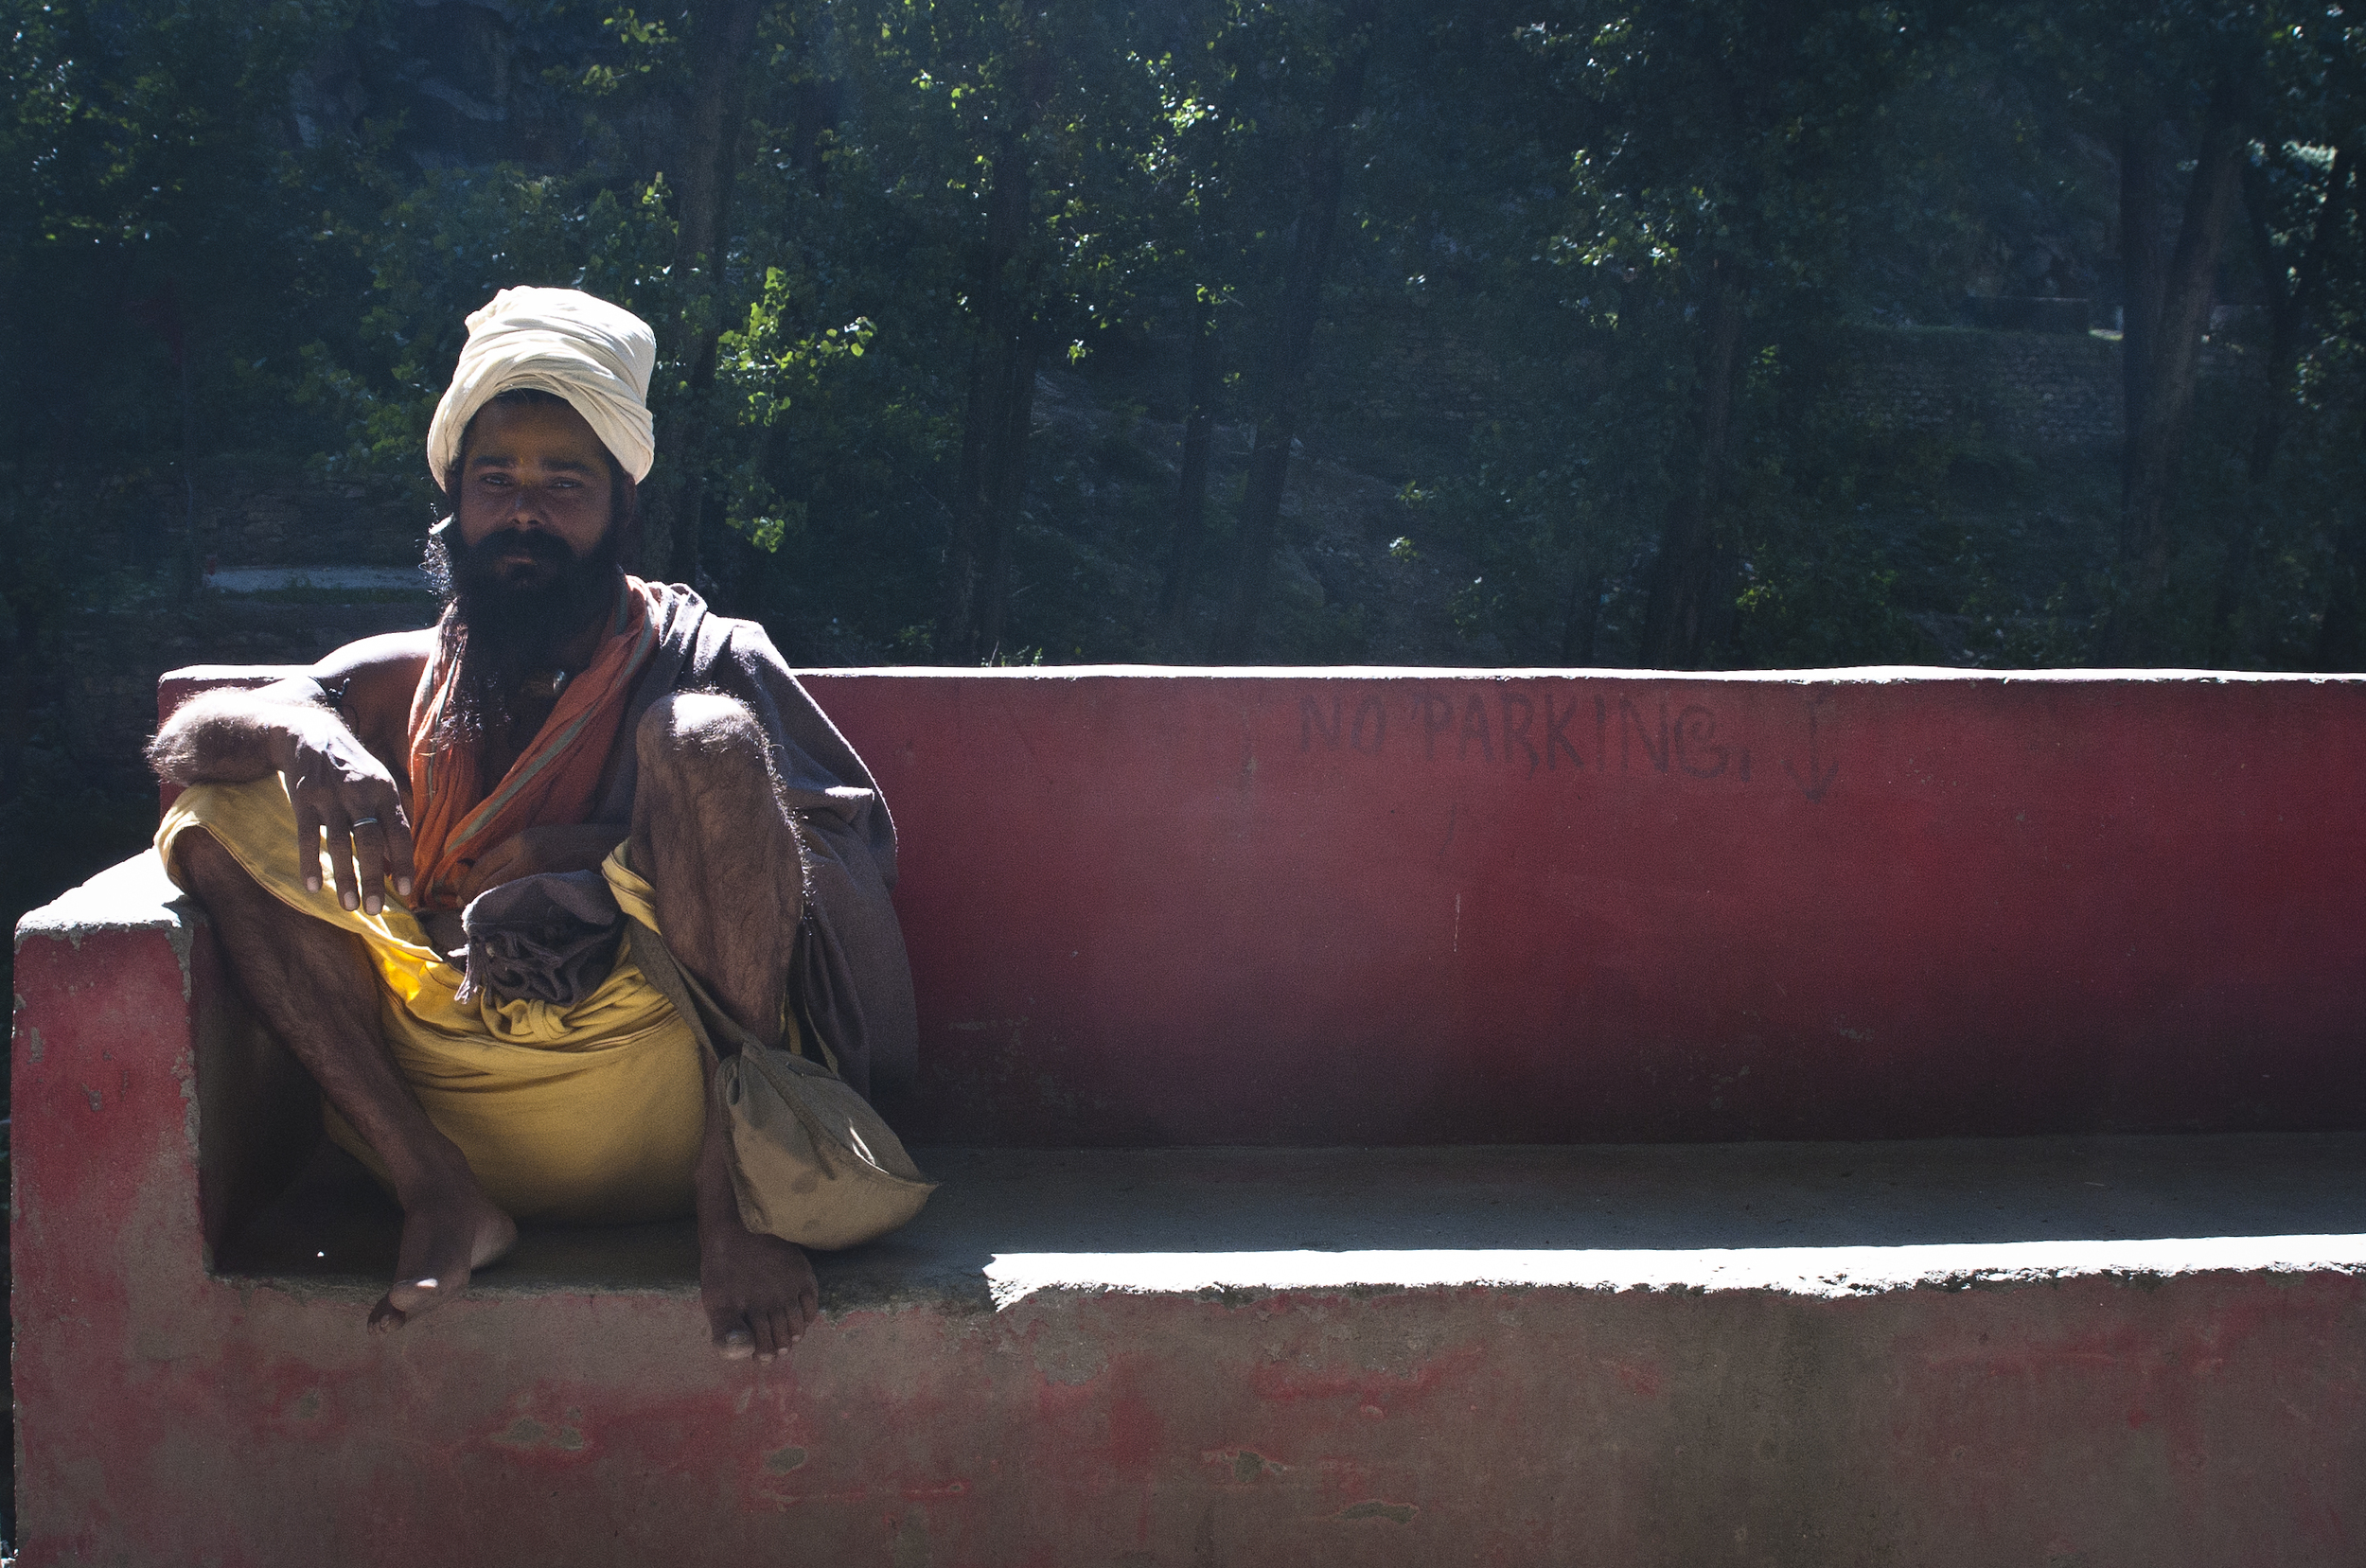 One of my first interactions with a Baba in the Paravati Valley